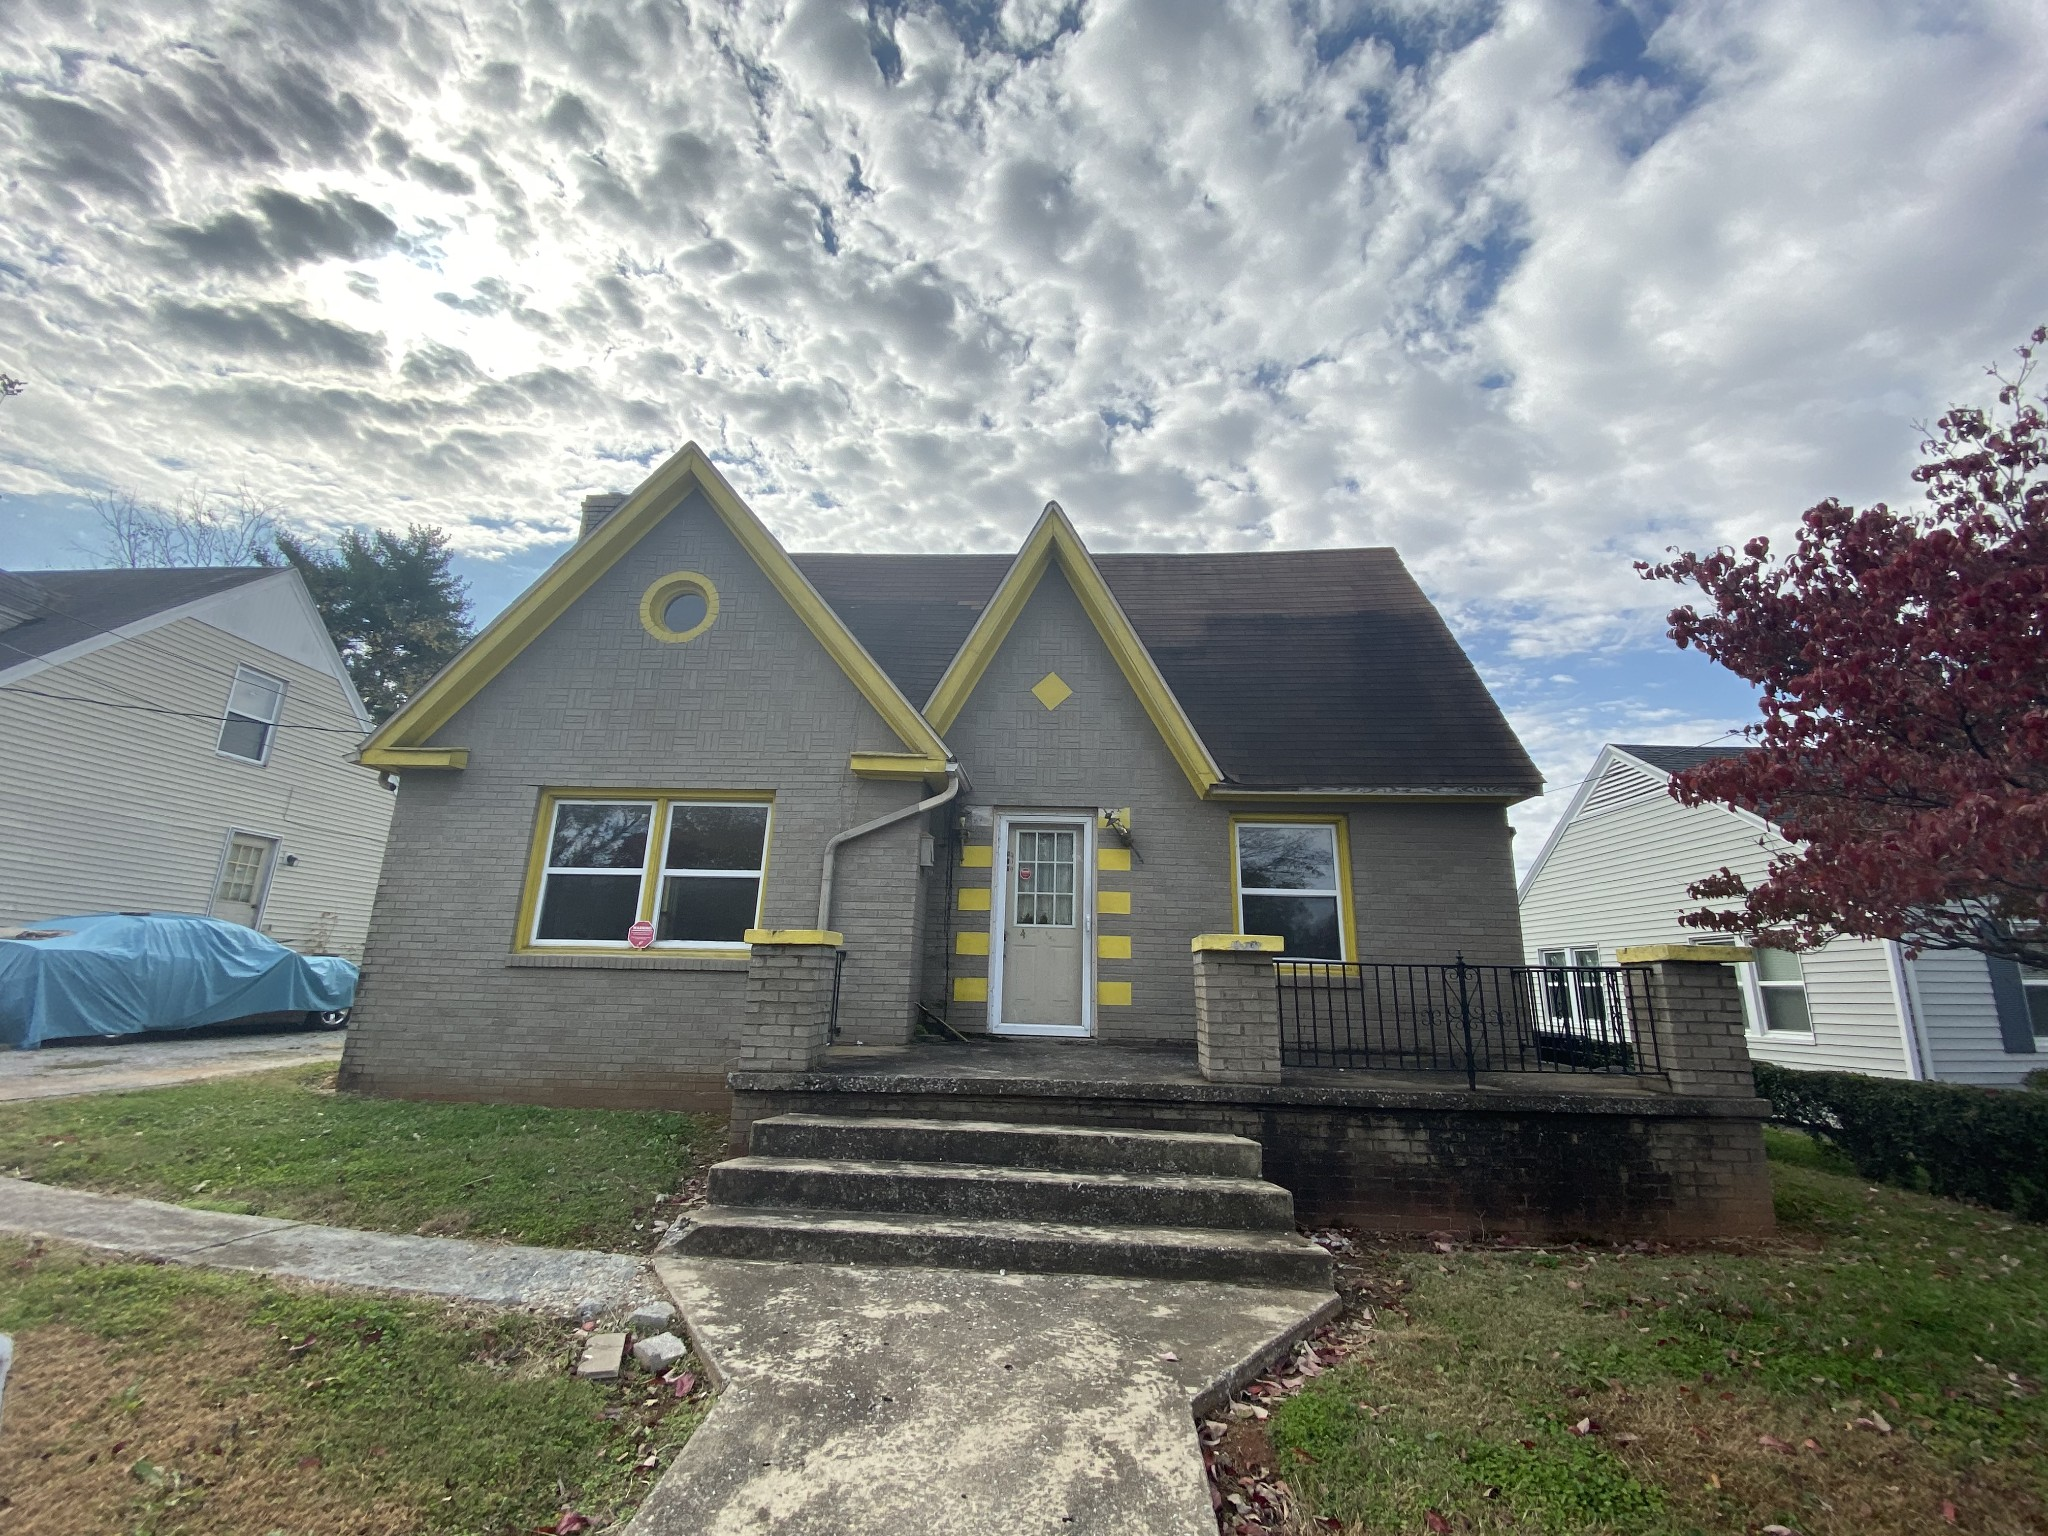 419W 15Th St, Hopkinsville, KY 42240 - Hopkinsville, KY real estate listing